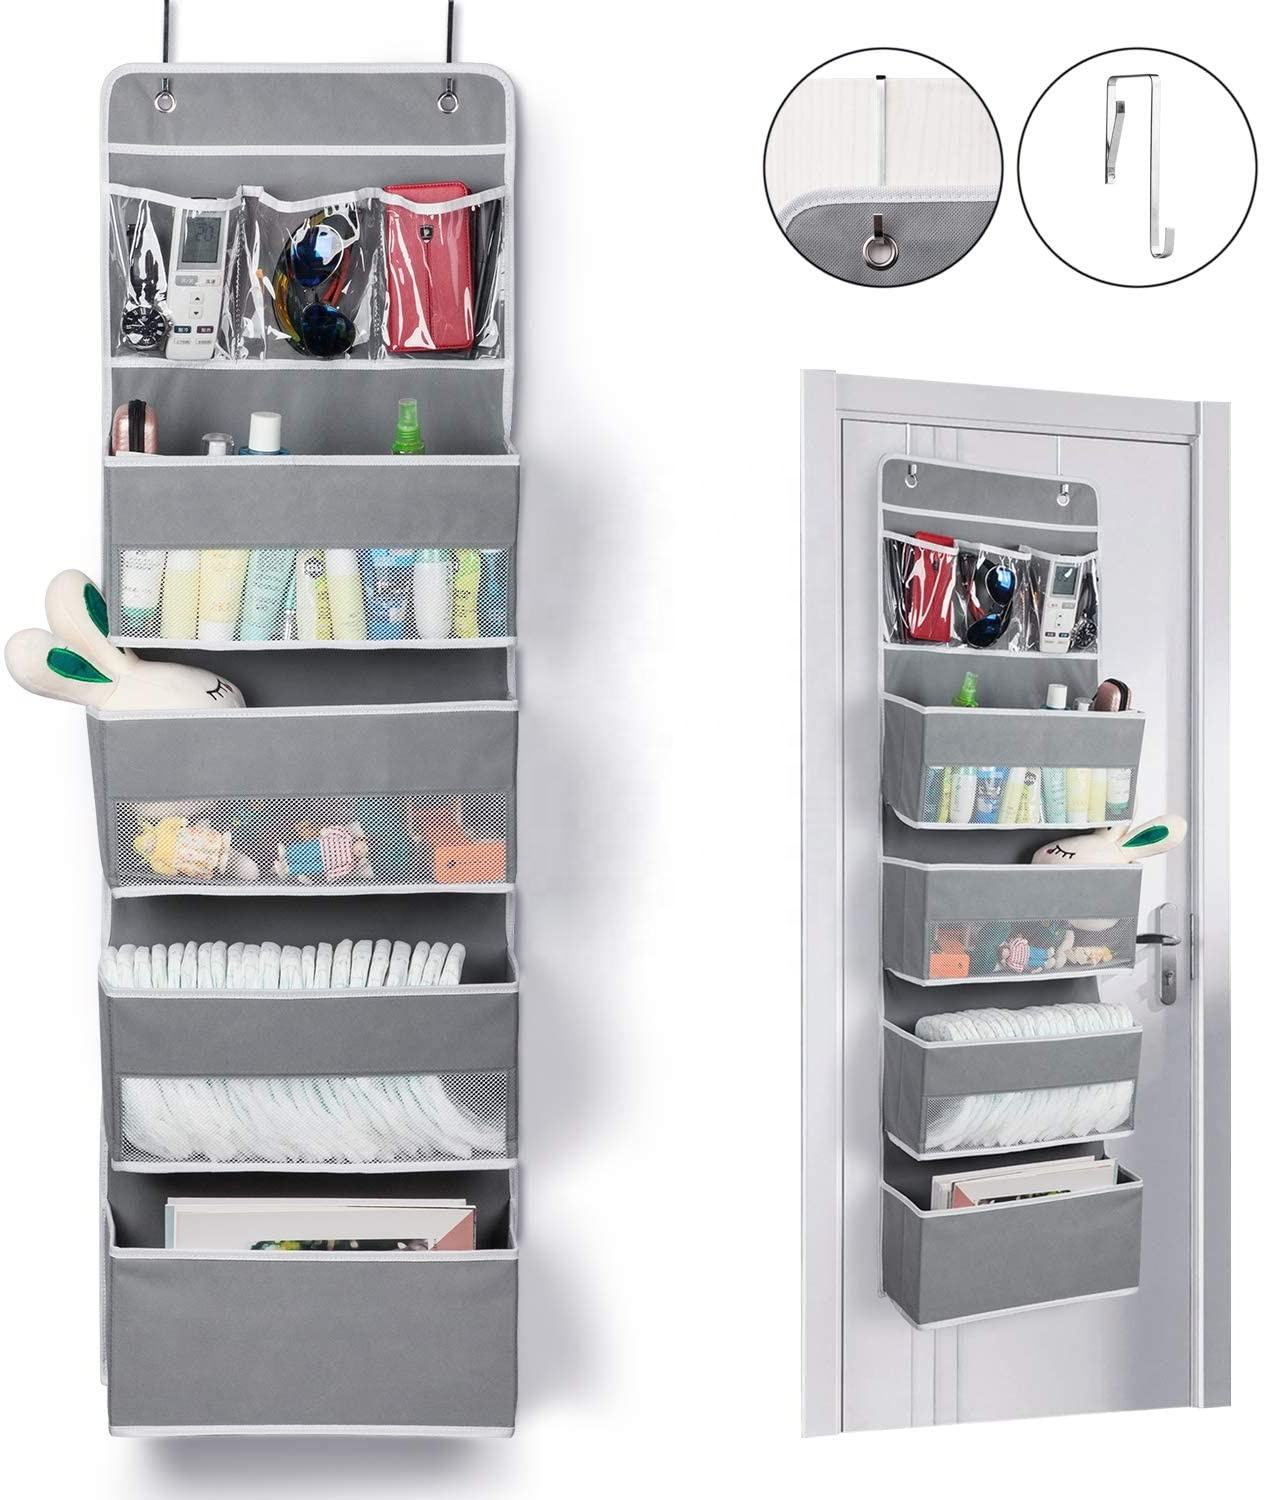 Door Hanging Organizer Closet Cabinet Baby Storage with 4 Large Pockets and 3 Small PVC Pockets for Cosmetics,Toys,Nursery